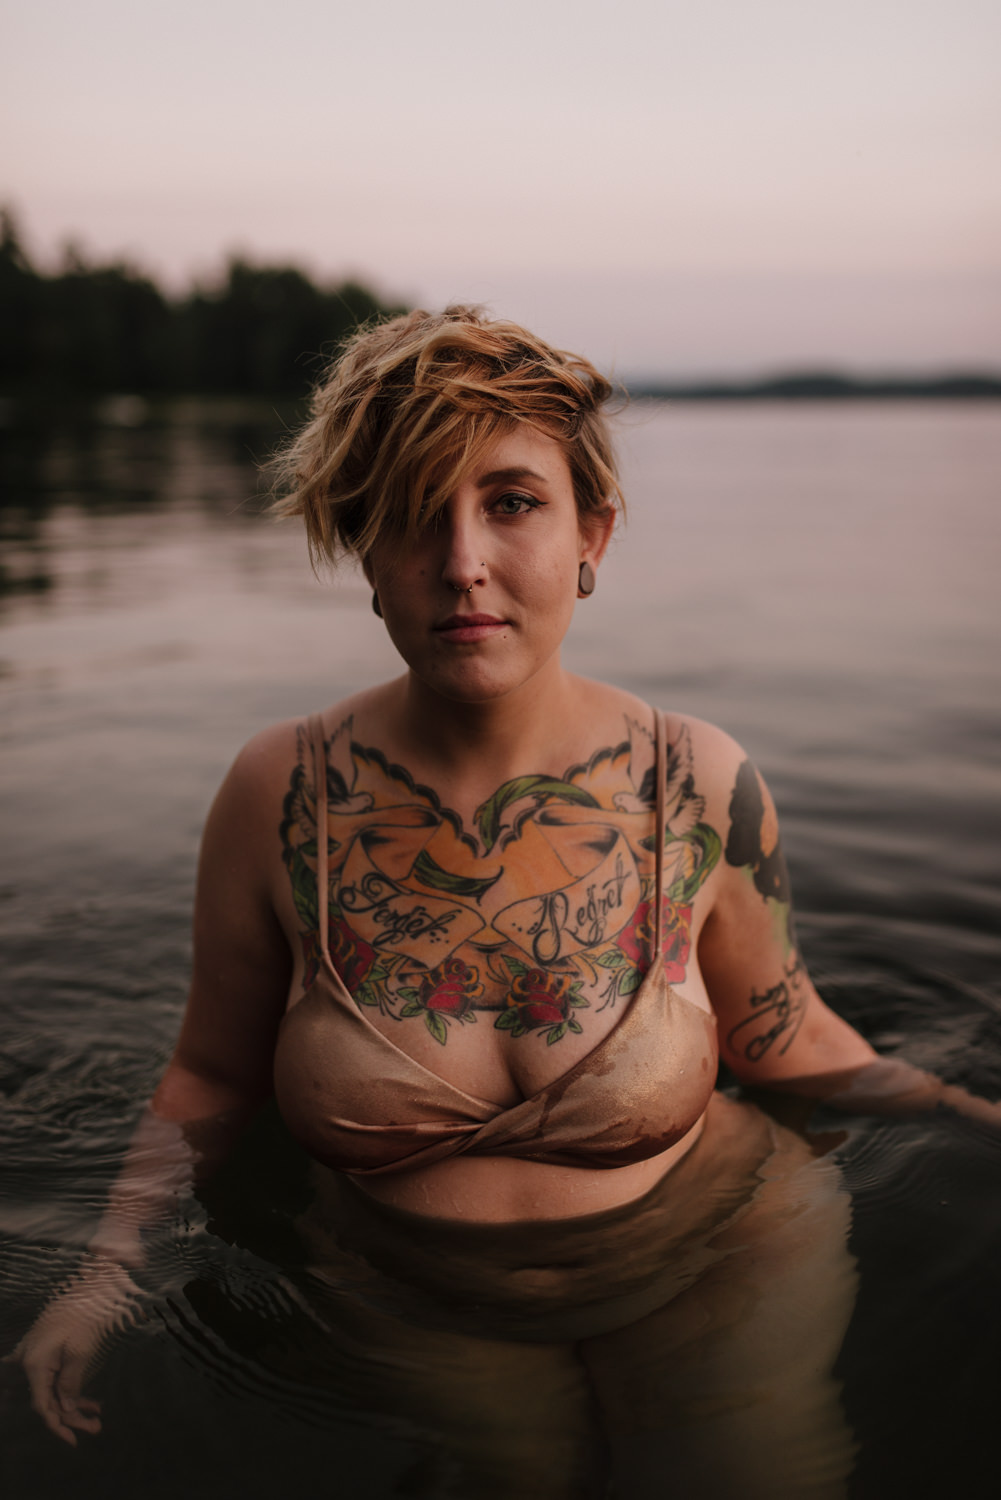 Woman with tattoos standing in water during sunset.